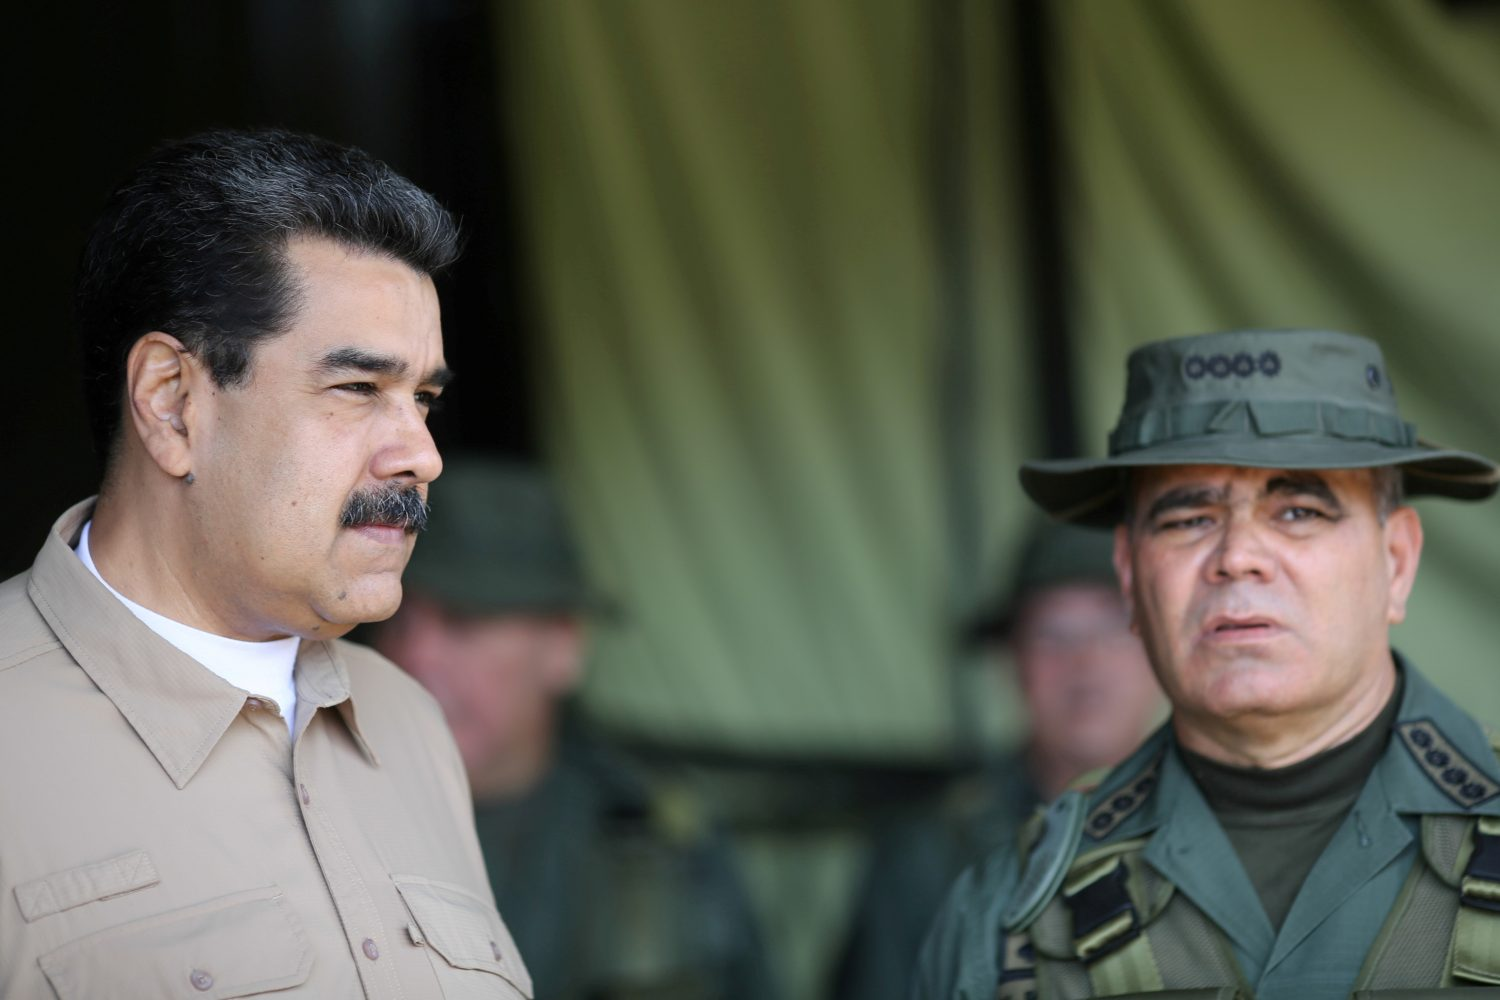 FILE PHOTO: Venezuela's President Nicolas Maduro and Defense Minister Vladimir Padrino speak during a meeting with military commanders, in Caracas, Venezuela June 3, 2019. Miraflores Palace/Handout via REUTERS/File Photo